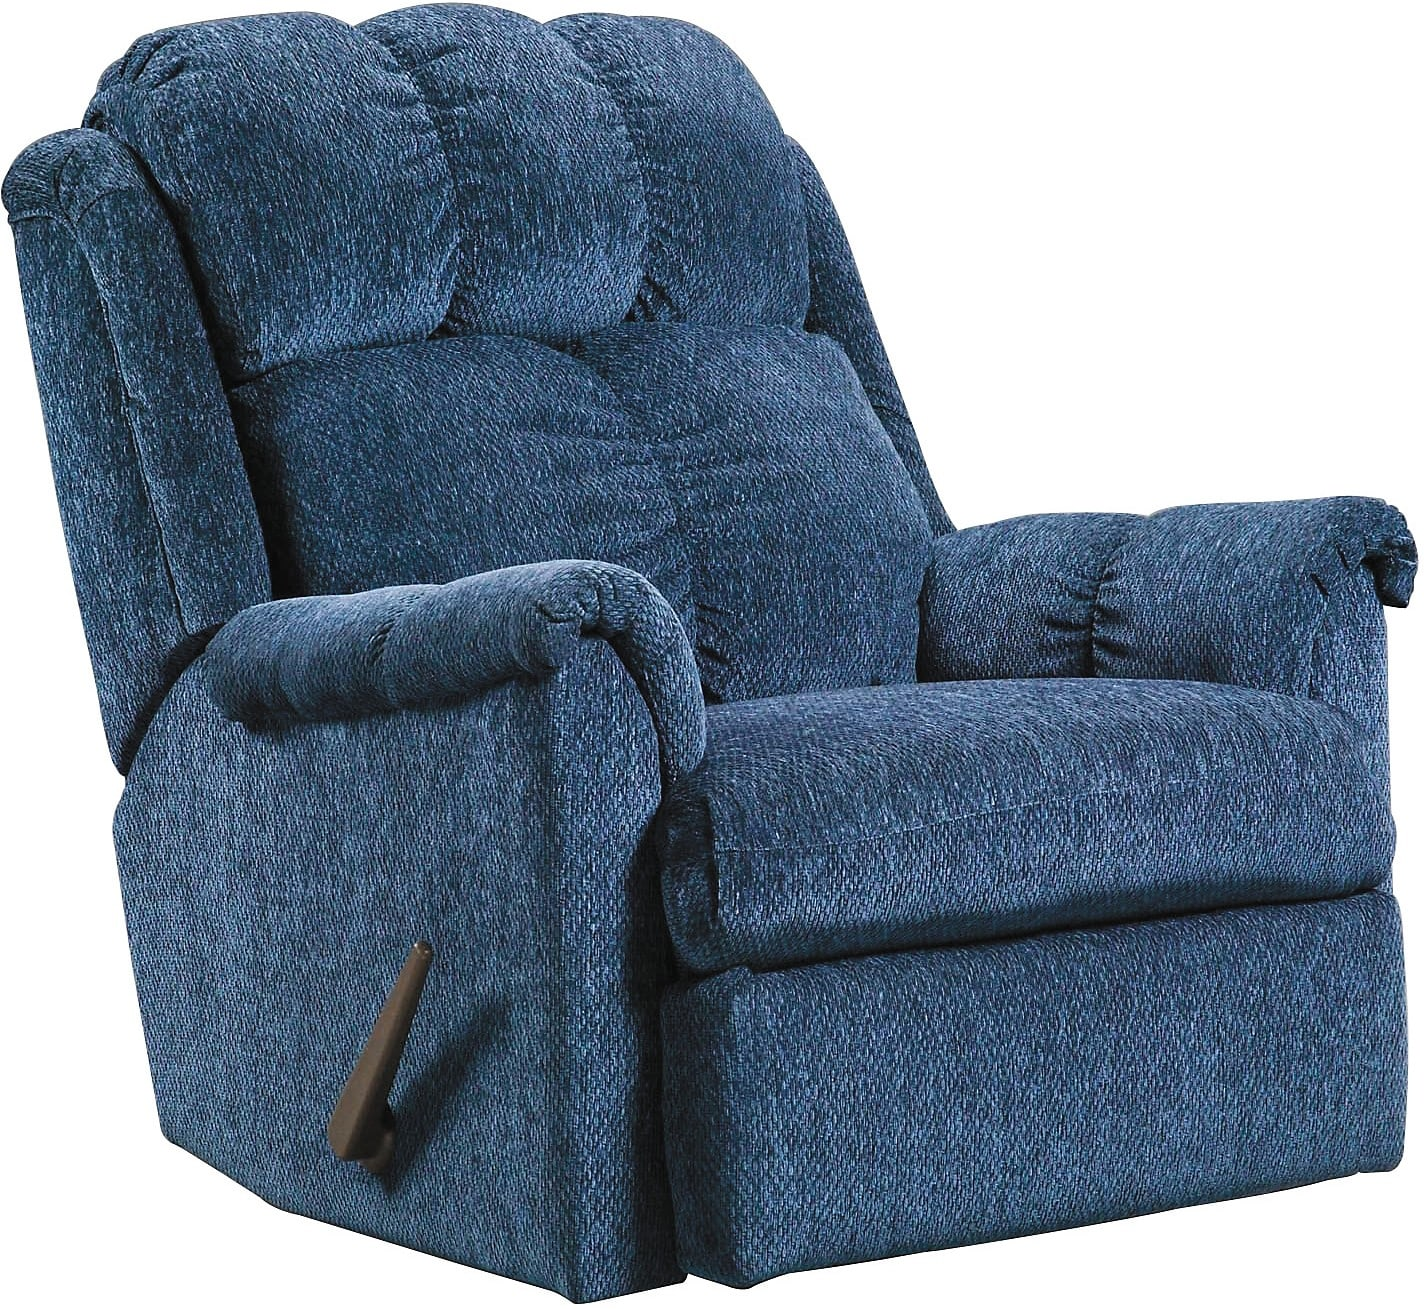 Navy Rocking Chair Navy Chenille Rocker Recliner The Brick